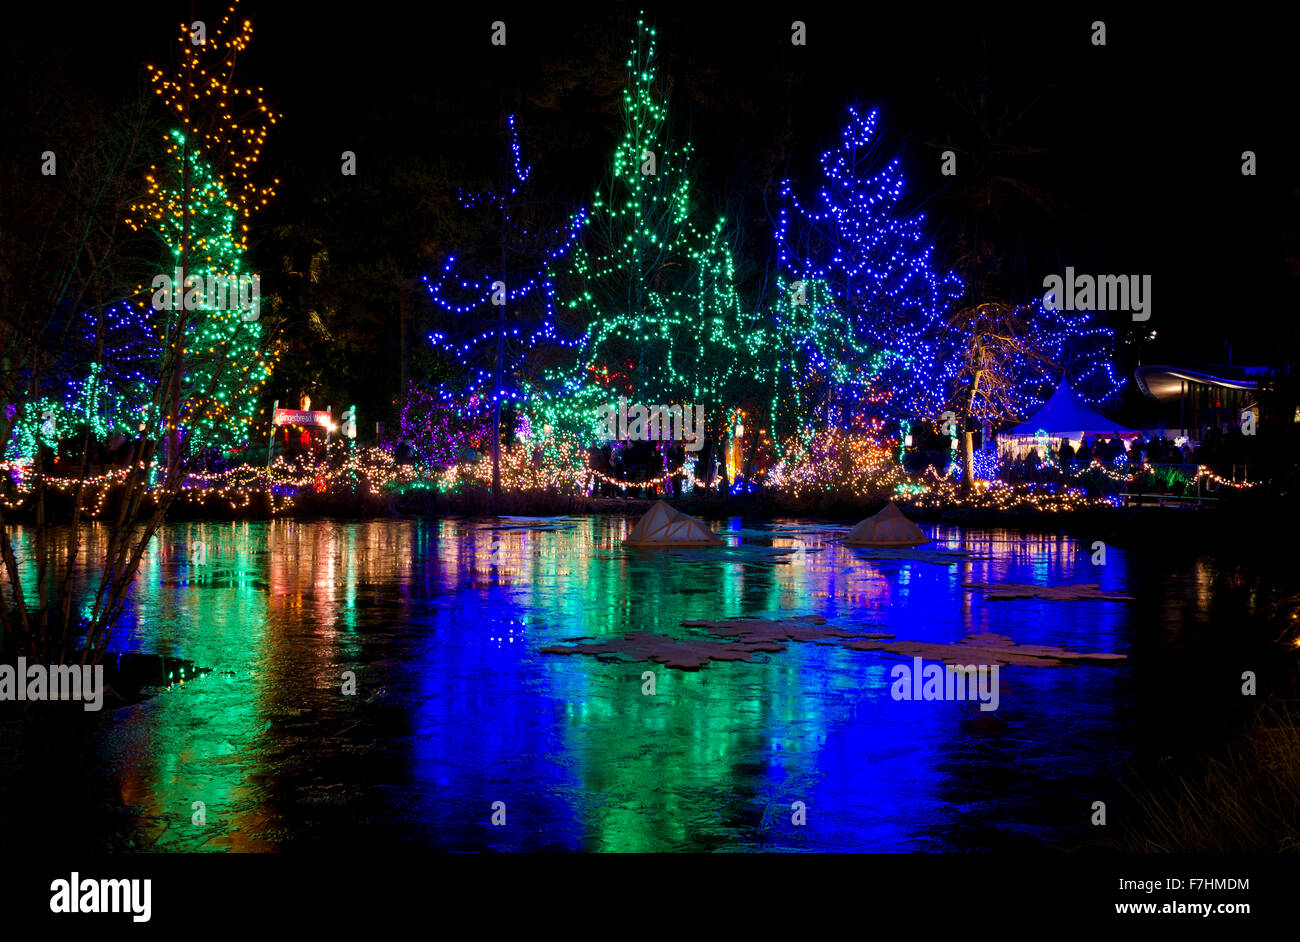 Beautiful Christmas and holiday light display at night at van Dusen botanical garden in Vancouver - Stock Image